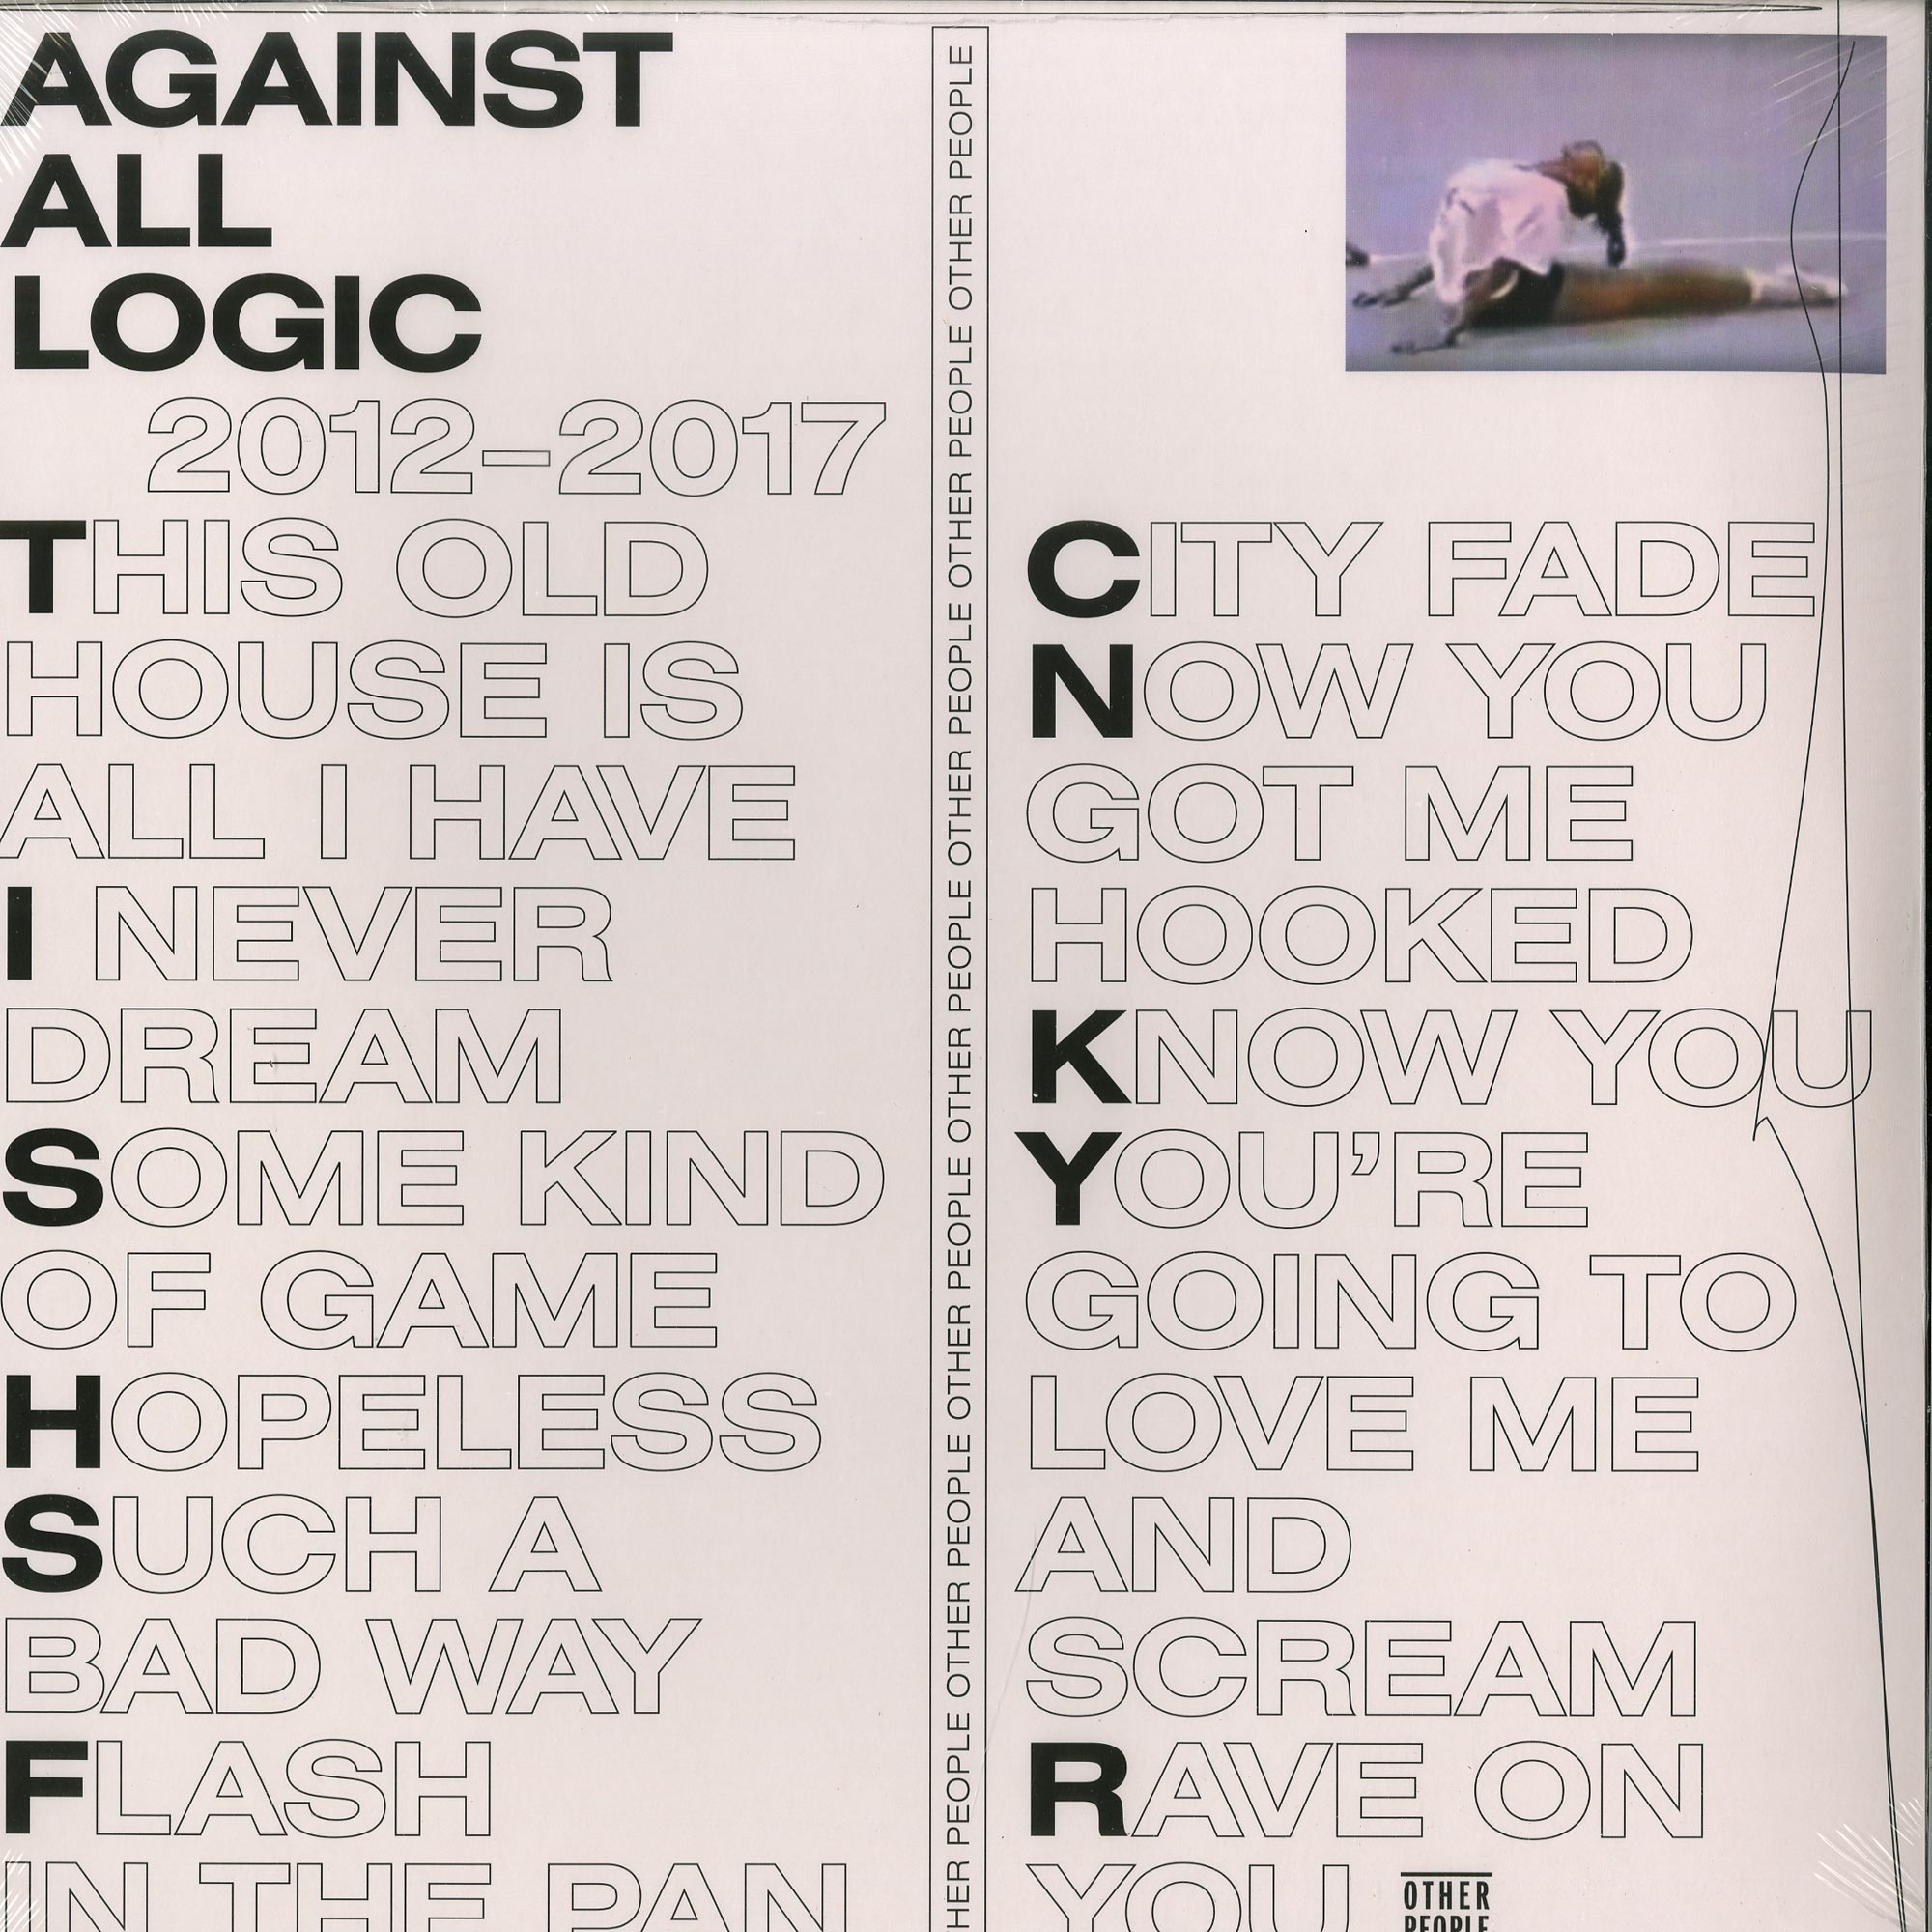 9. 2012 - 2017A.A.L - I honestly don't think this album was released with the intention of getting much hype, but it ended up taking the electronic music world by storm. Once it was revealed that Against All Logic is just a pseudonym for Chilean American artist Nicolas Jaar, I thought the album would be a collection of throwaways. But, none of the songs on here fit that category. 2012 - 2017 is a gorgeous and dynamic collection of songs that prove Jaar's versatility as an artist. On top of that, there is a newfound soulfulness to the production on some of these cuts that I have never seen before in Jaar's work. He samples David Axelrod on the opener! Released under Other People in February, this album was a breath of fresh air in an otherwise dismal year. Rating: 7.5/10Stream on Spotify.Stream on Apple Music.